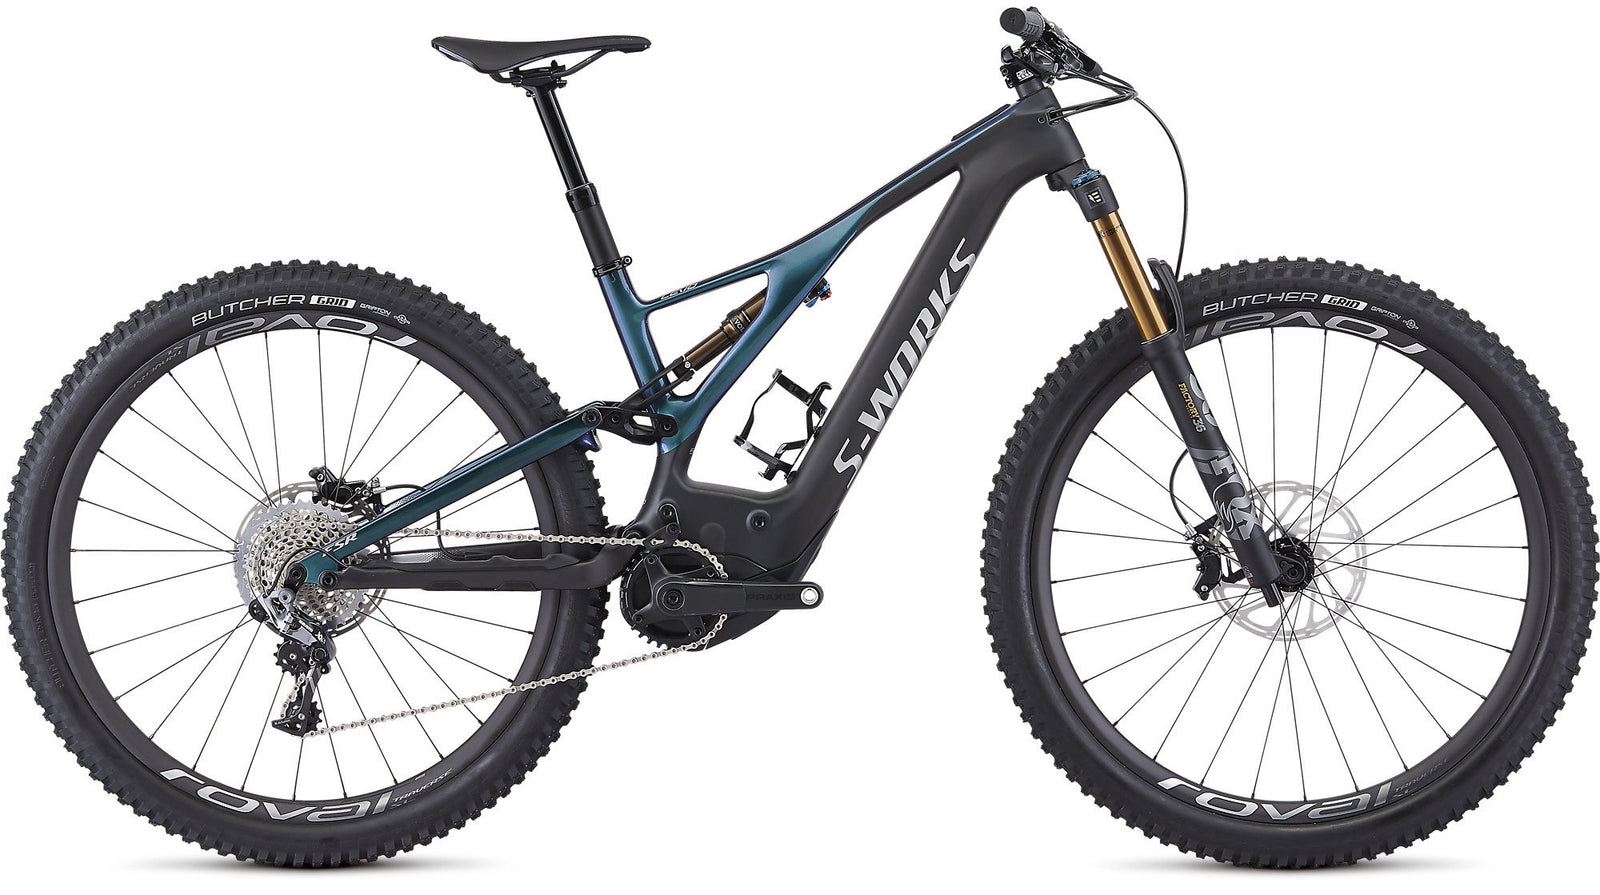 2019 S-Works Turbo Levo